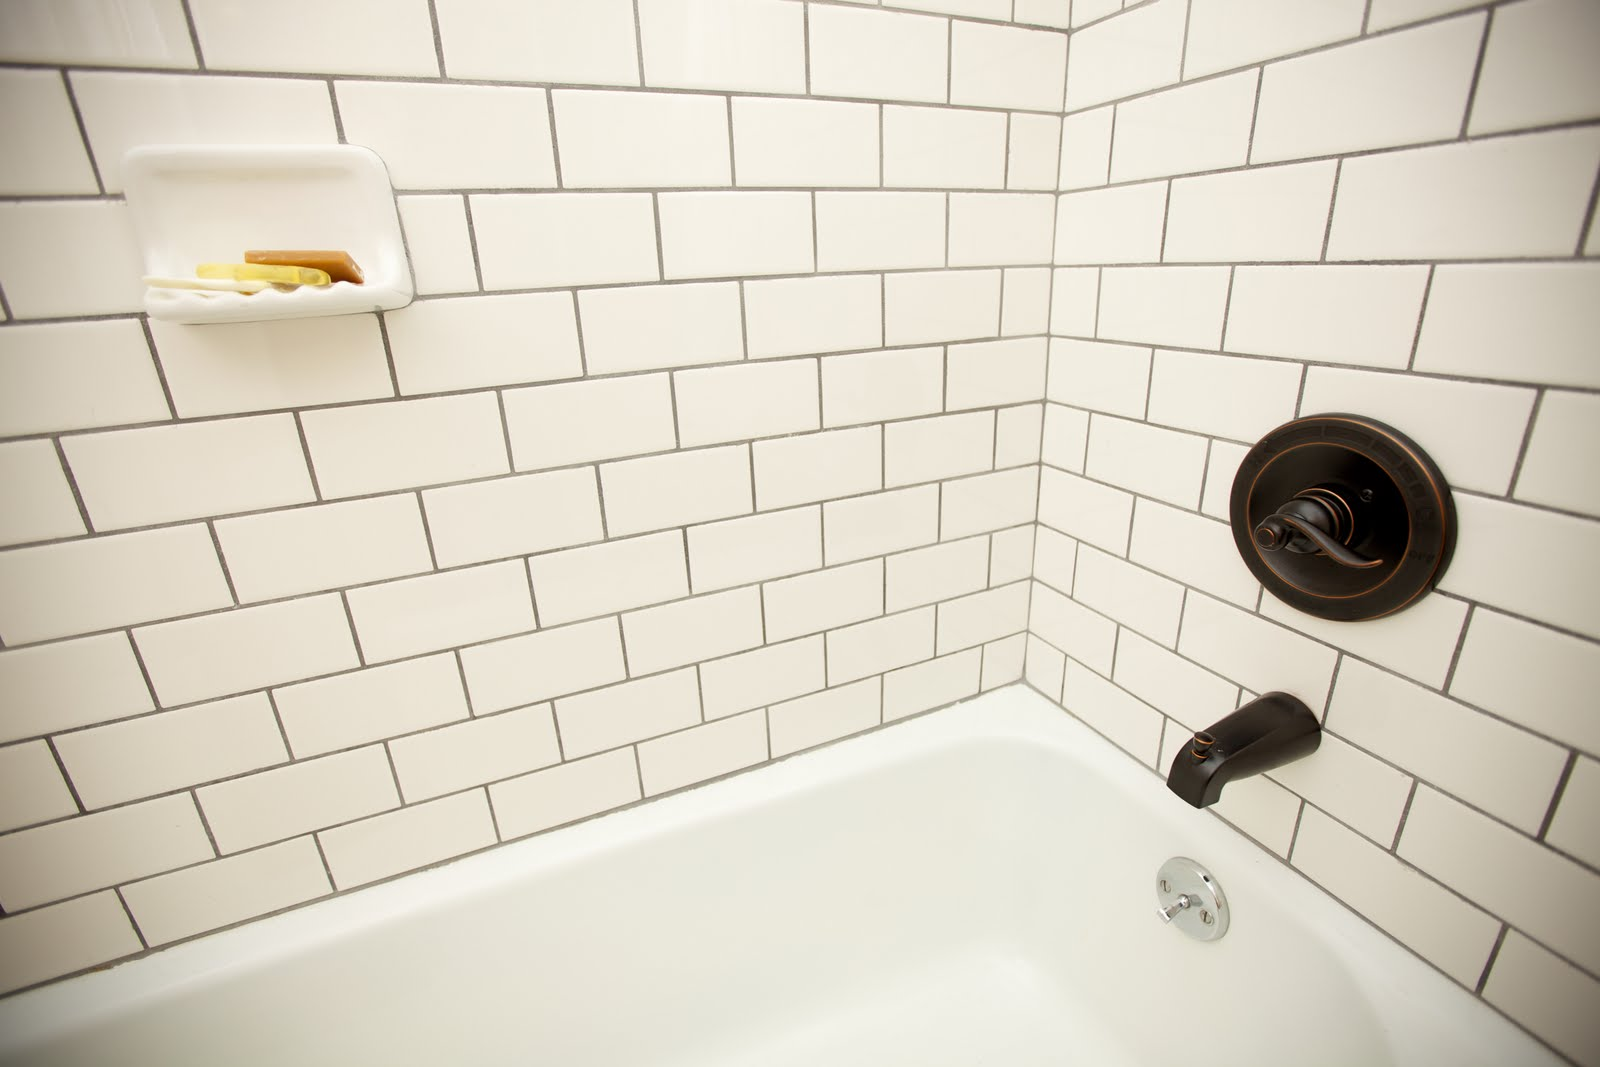 Grouting Tiles In Bathroom Forest Hall Grouting Bathroom Wall ...